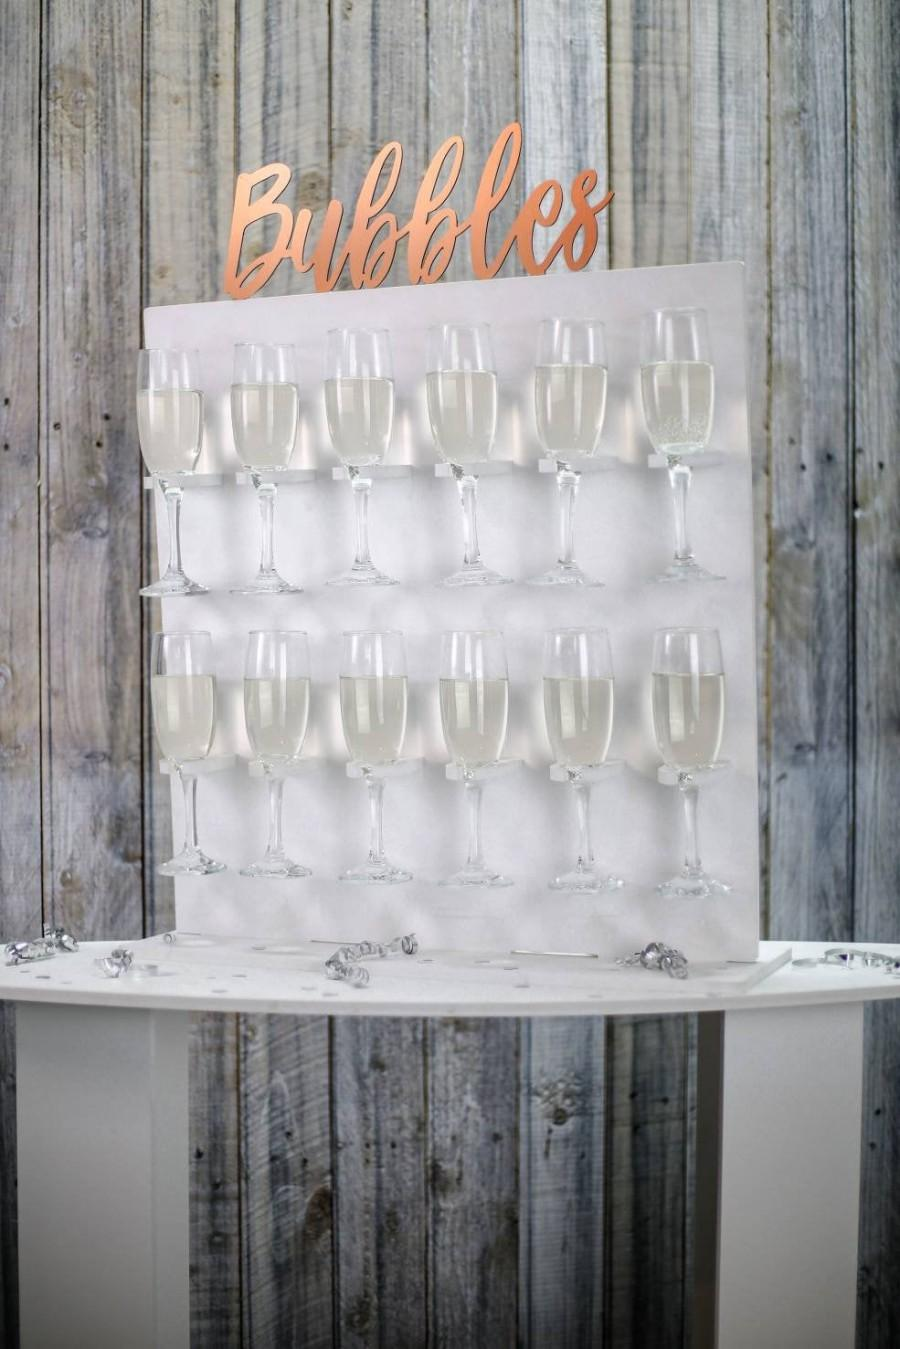 Hochzeit - Bubbles Wall, Champagne Wall, Prosecco Wall Various Sizes Holds 12-36 Flutes Freestanding. White with Text